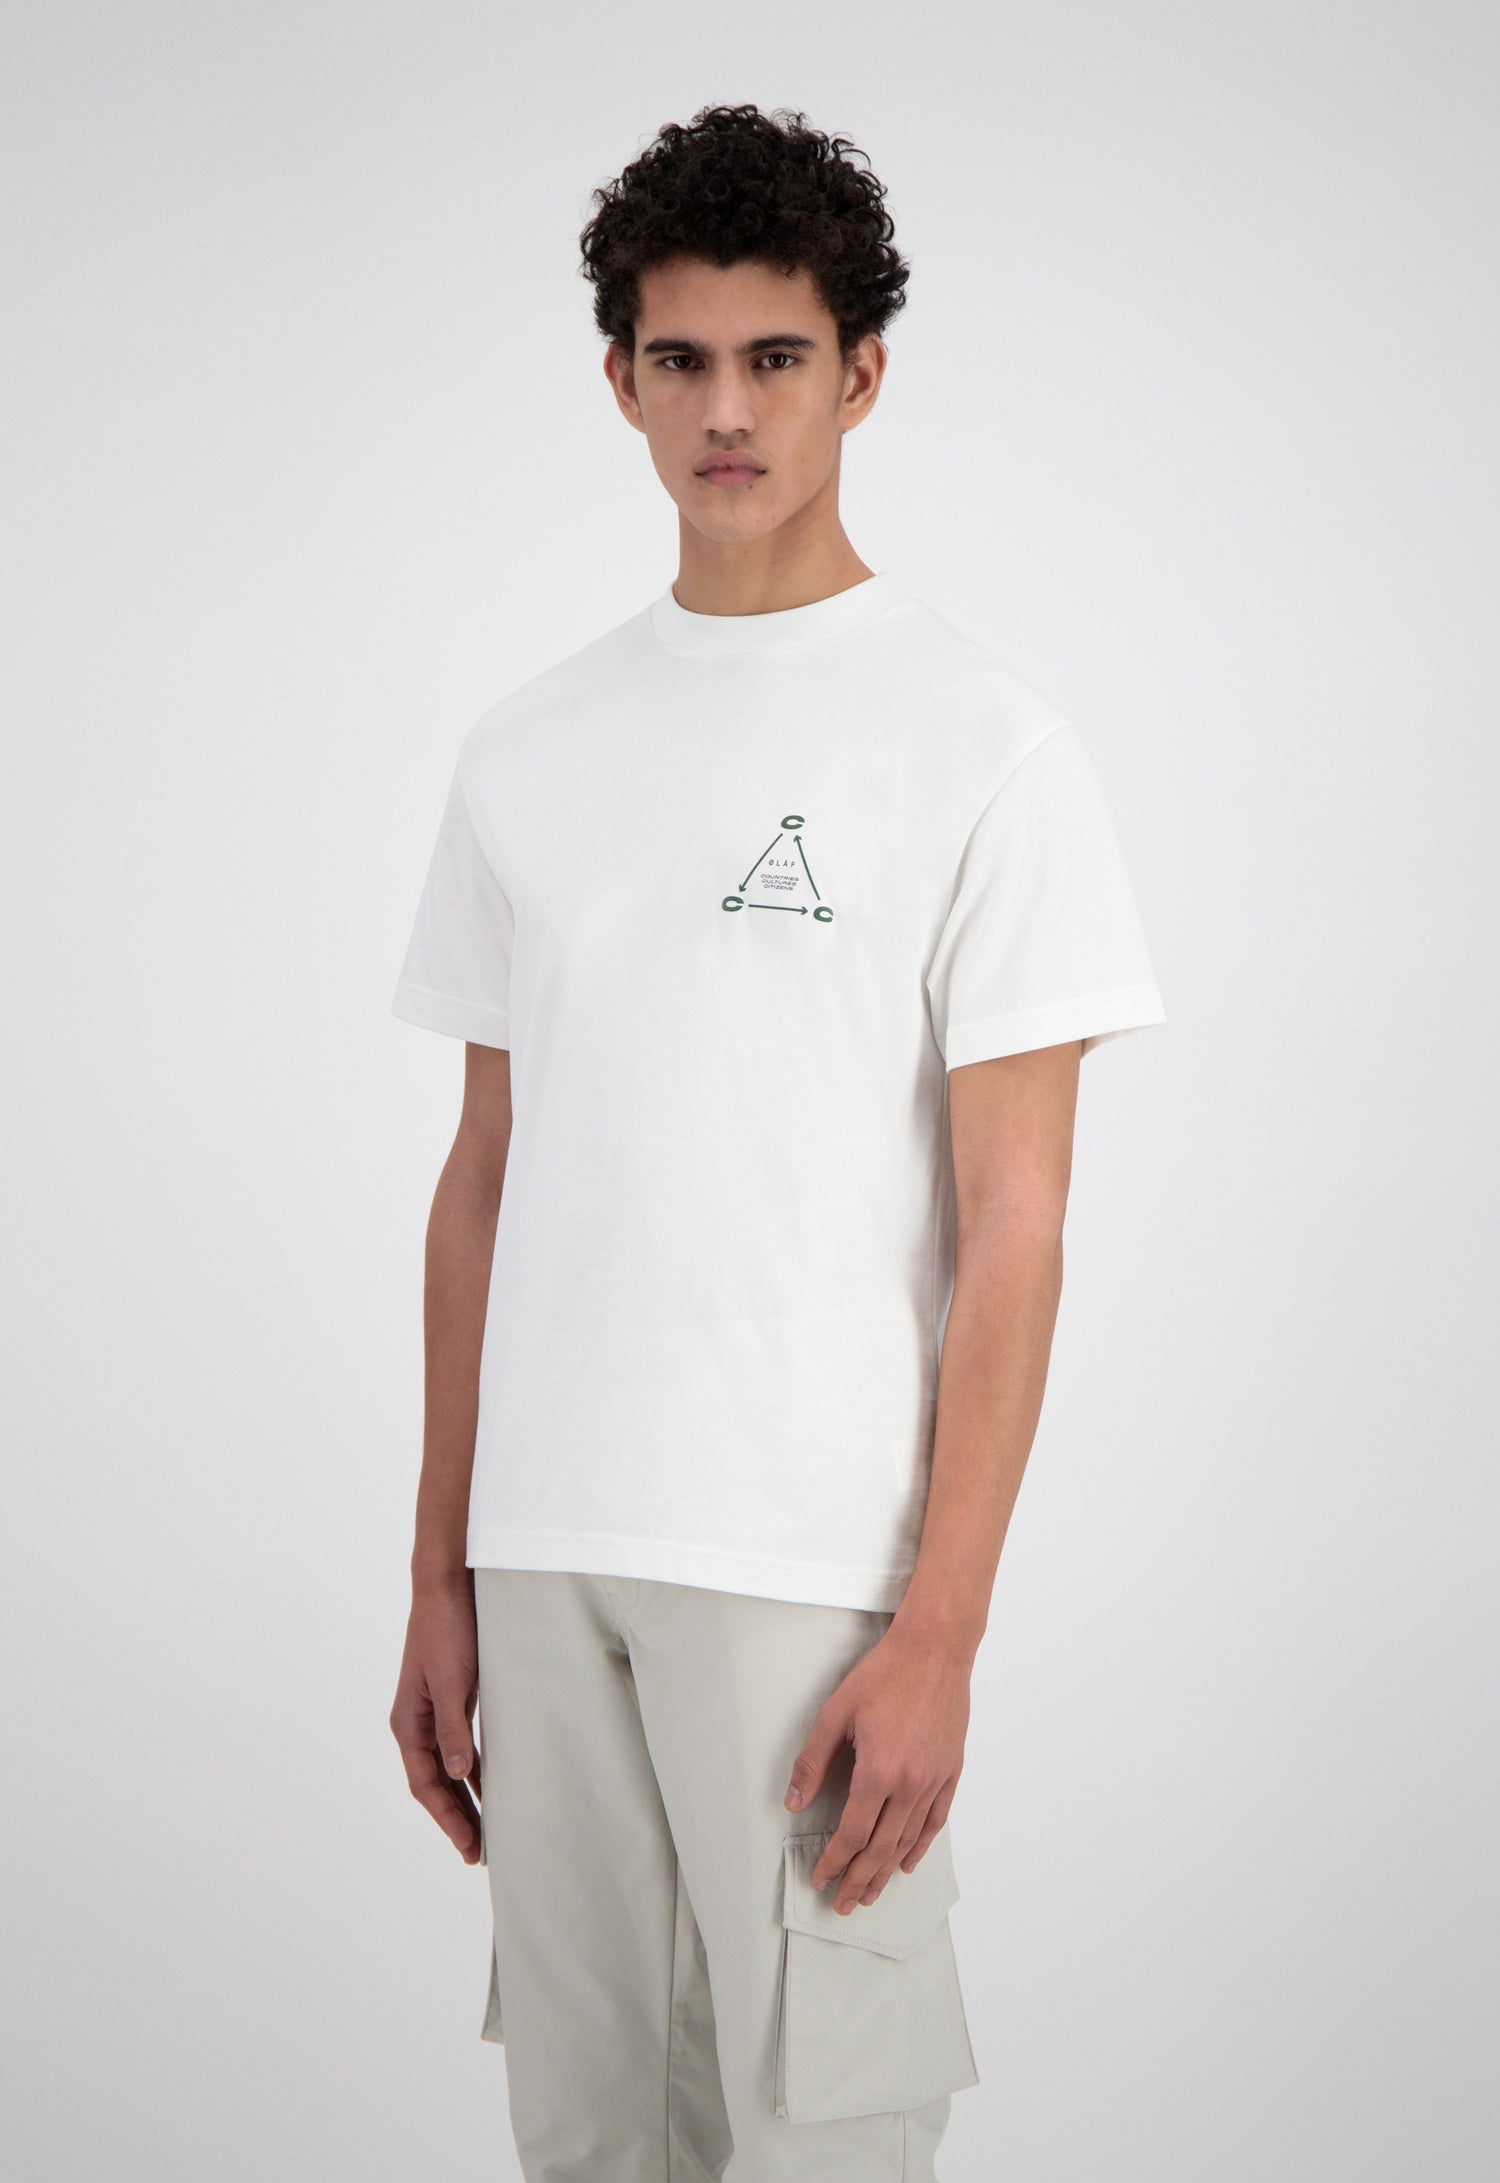 ØLÅF CCC Cycle T <br>White